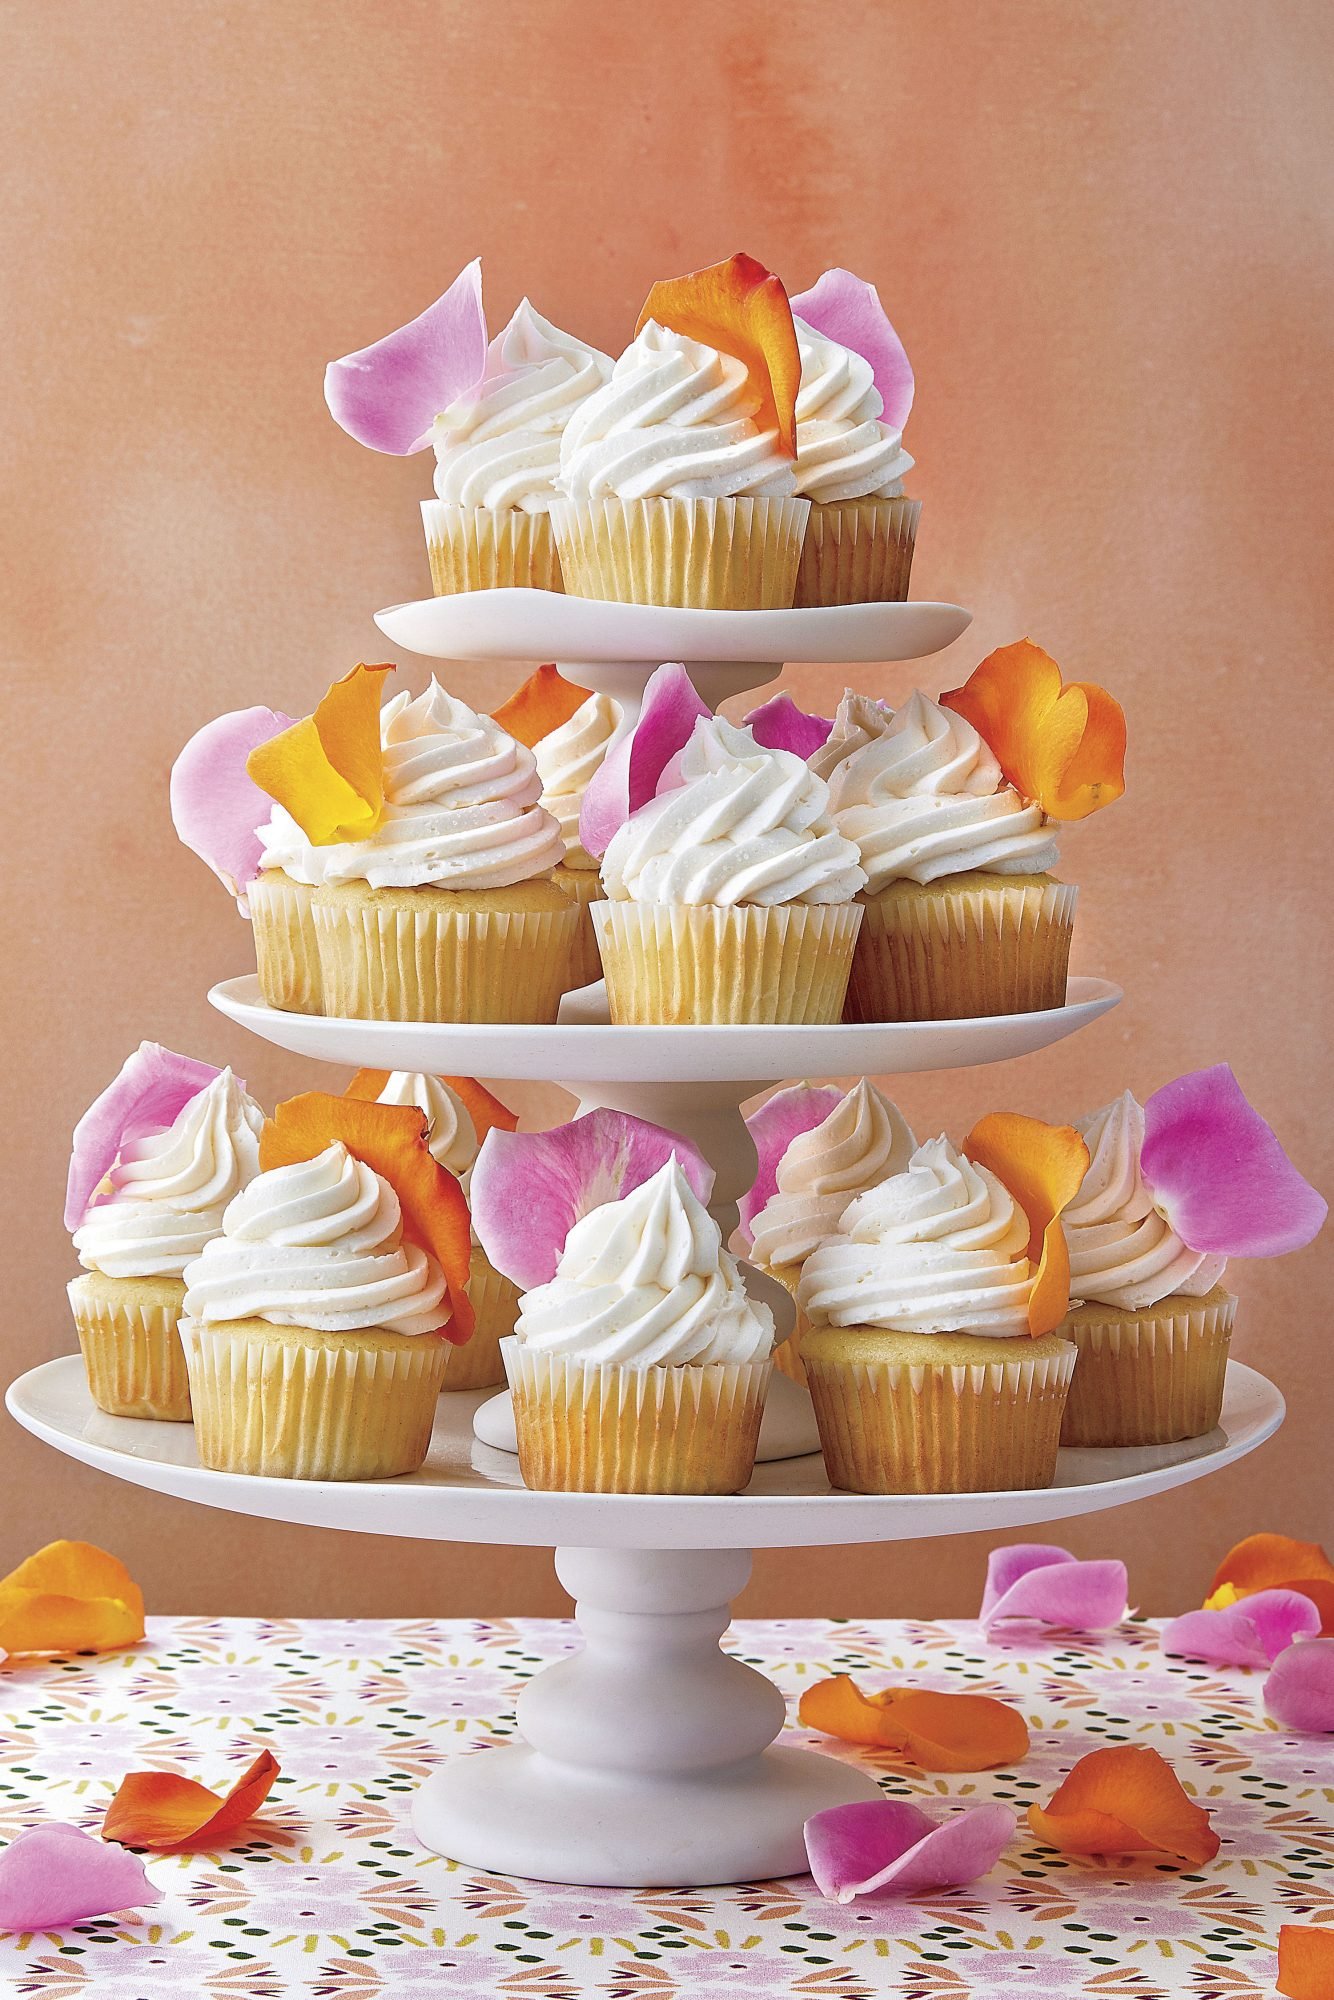 sl-White Cupcakes with Rose Petals